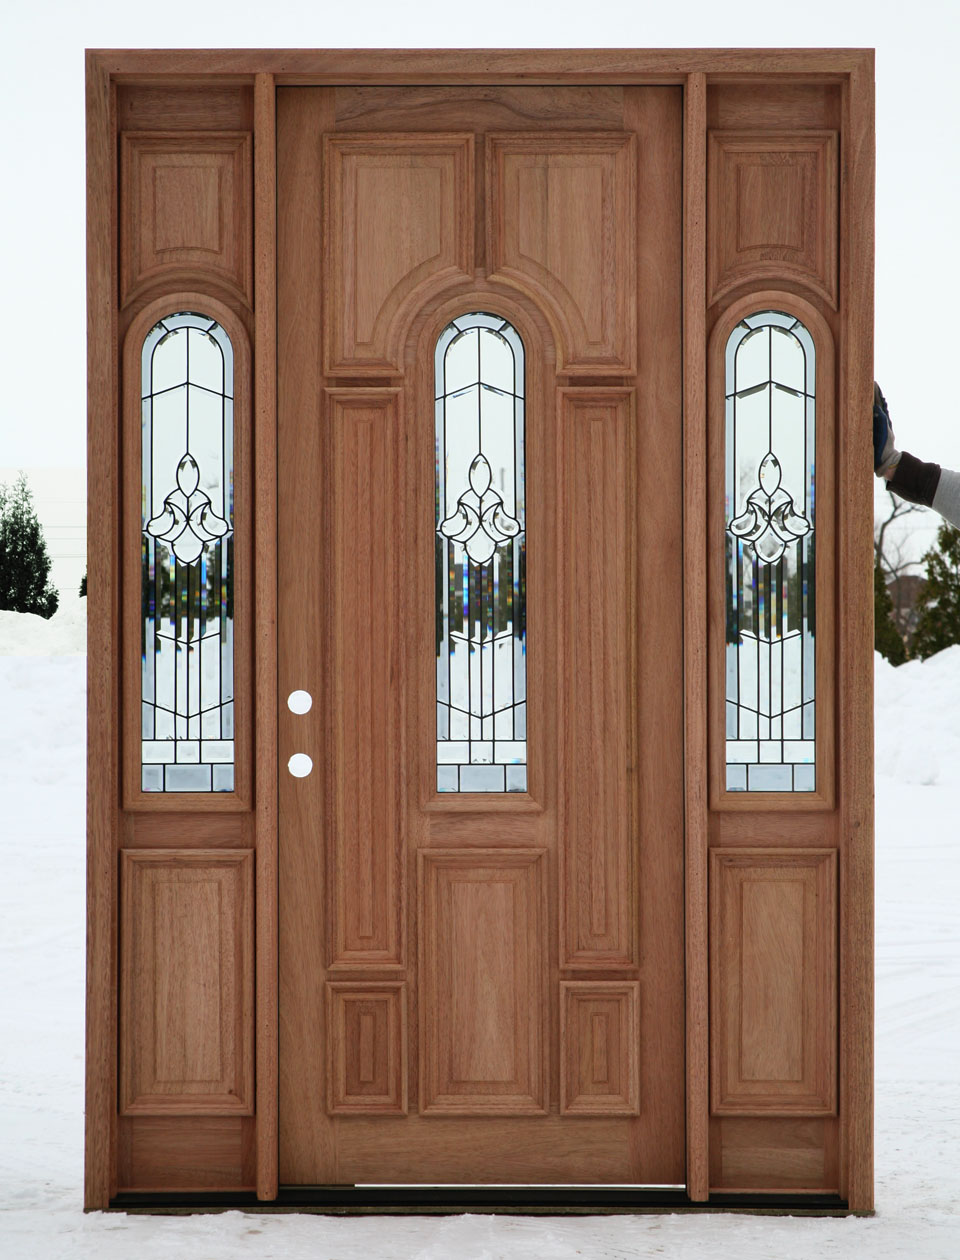 Exterior doors prehung with sidelights for Exterior entry door